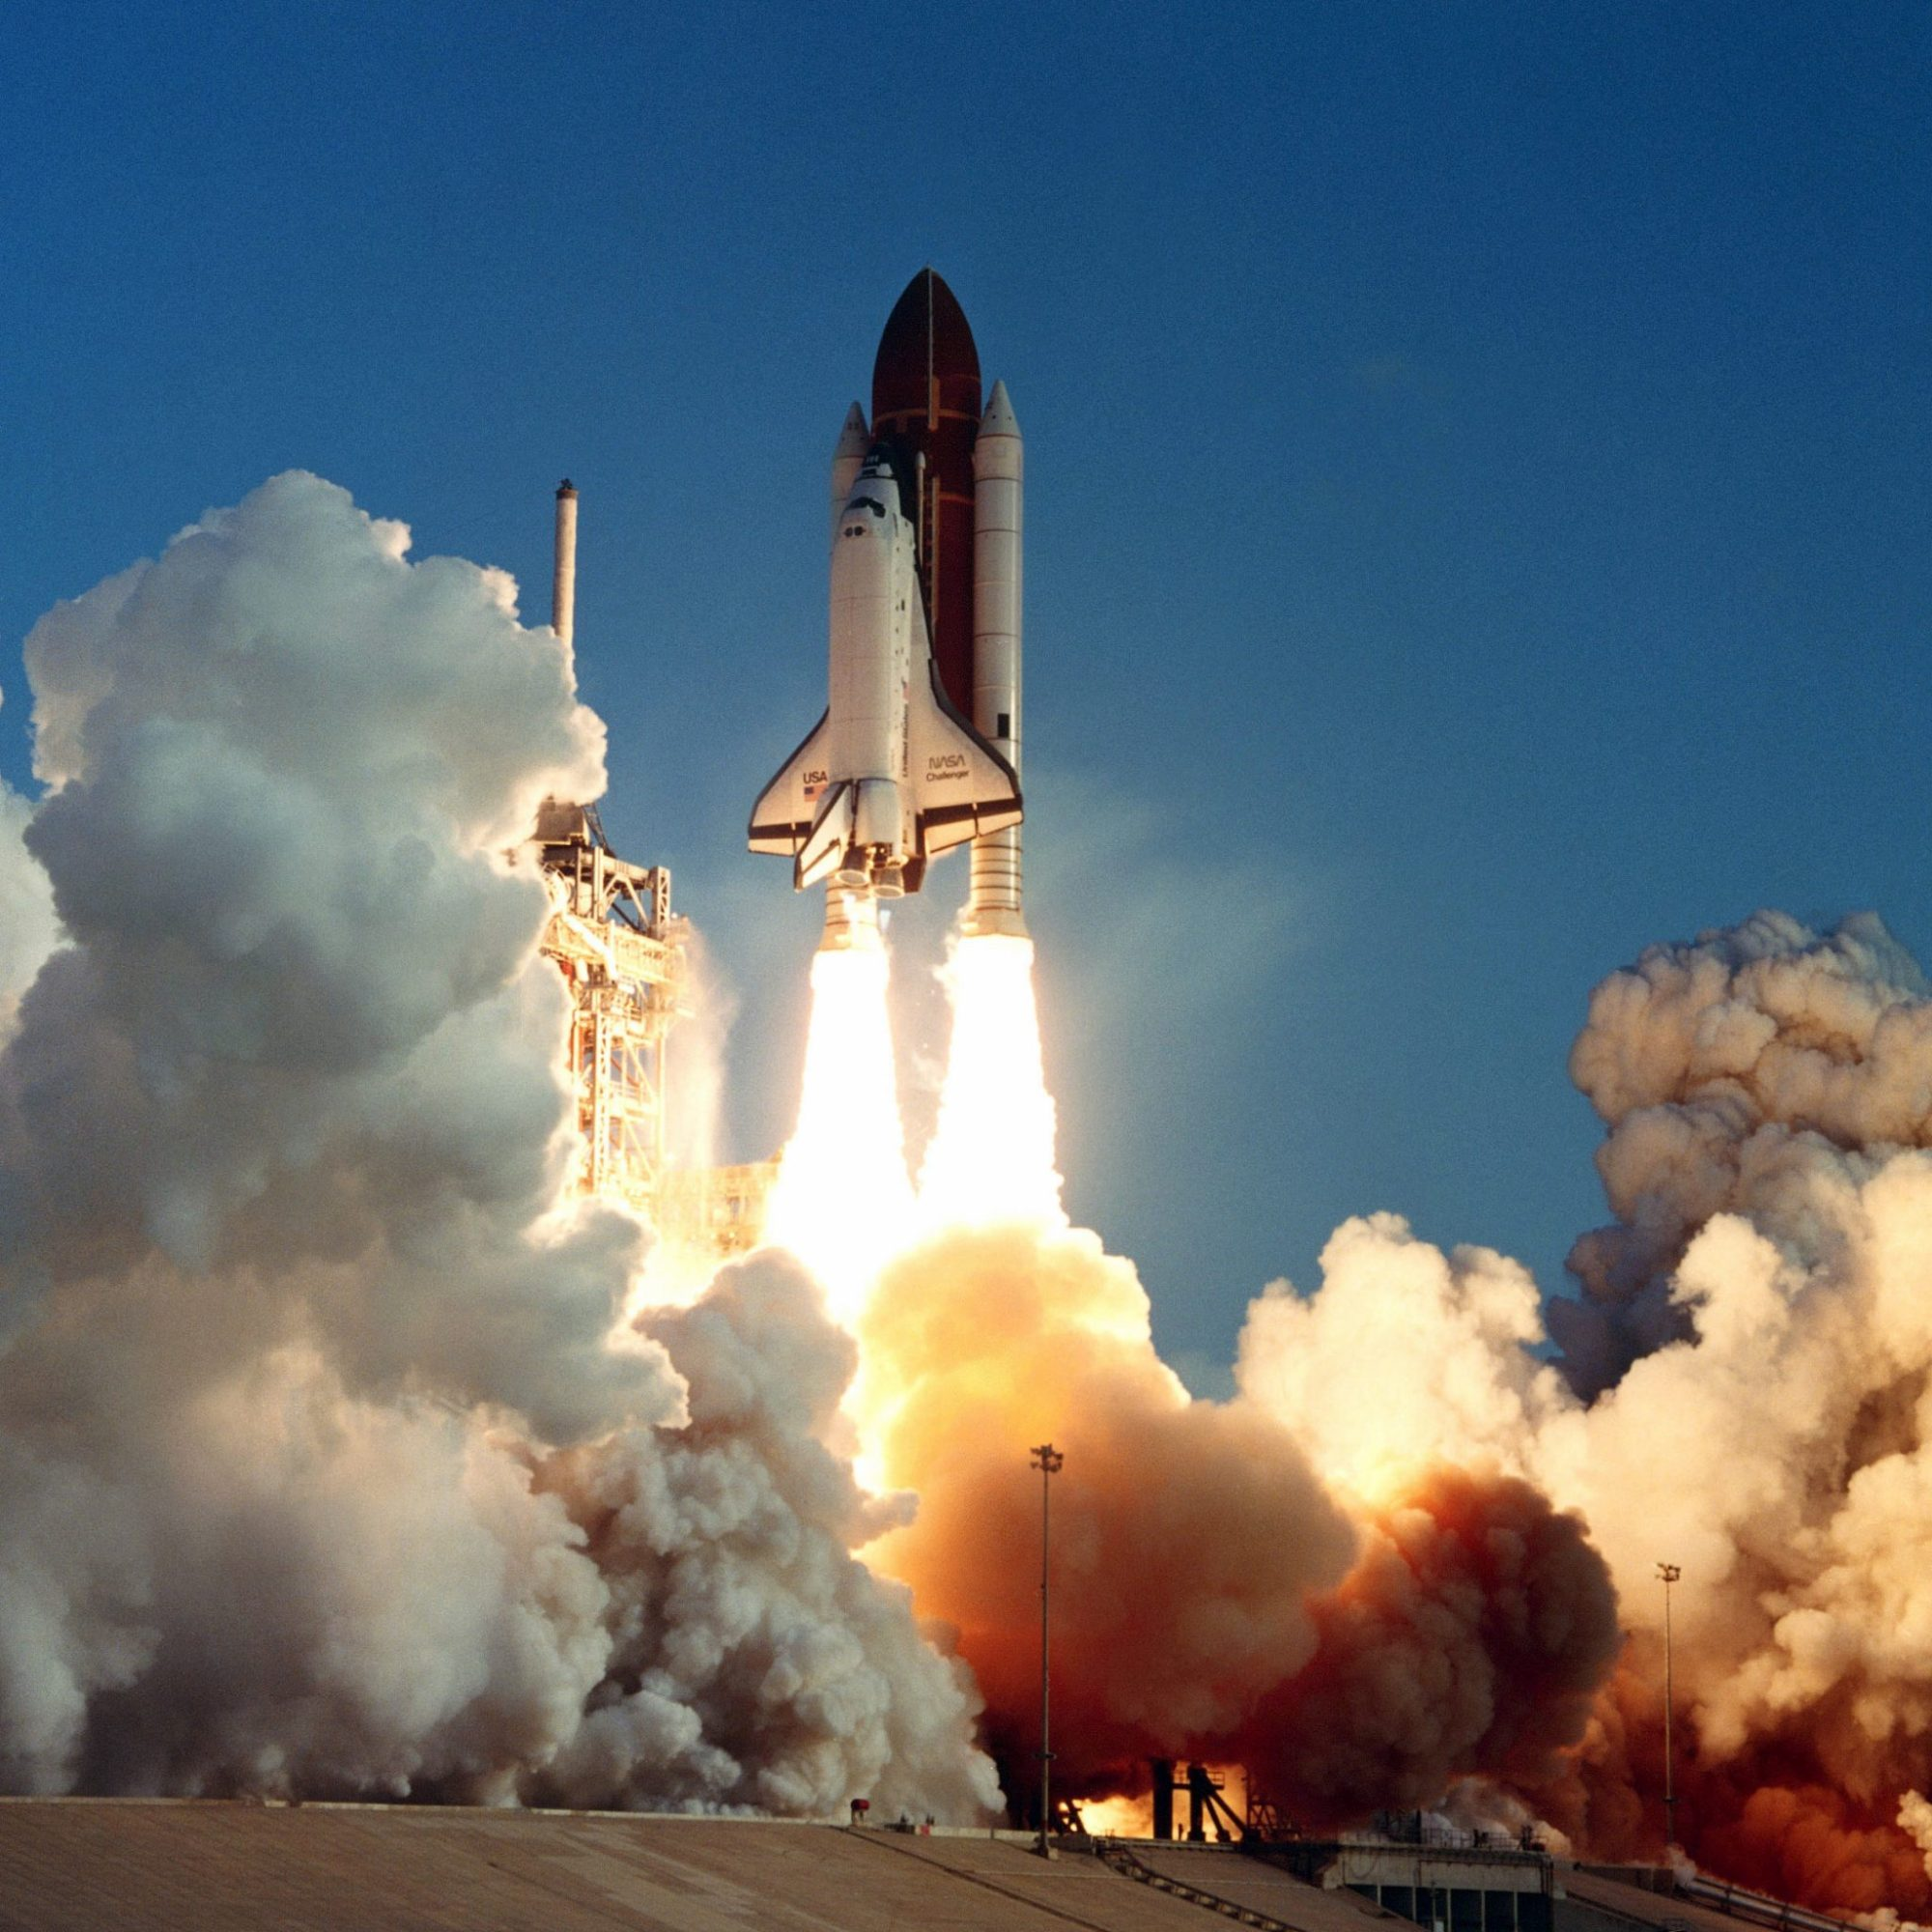 The space shuttle orbiter Challenger lifts off from Complex 39A at 7:33 a.m. EDT. Aboard the seventh flight of the Space Transportation System (STS-7) are: Bob Crippen, commander; Frederick H. Hauck, pilot; and mission specialists Sally Ride, John Fabian and Dr. Norman Thagard. 330-CFD-DF-SC-84-04517